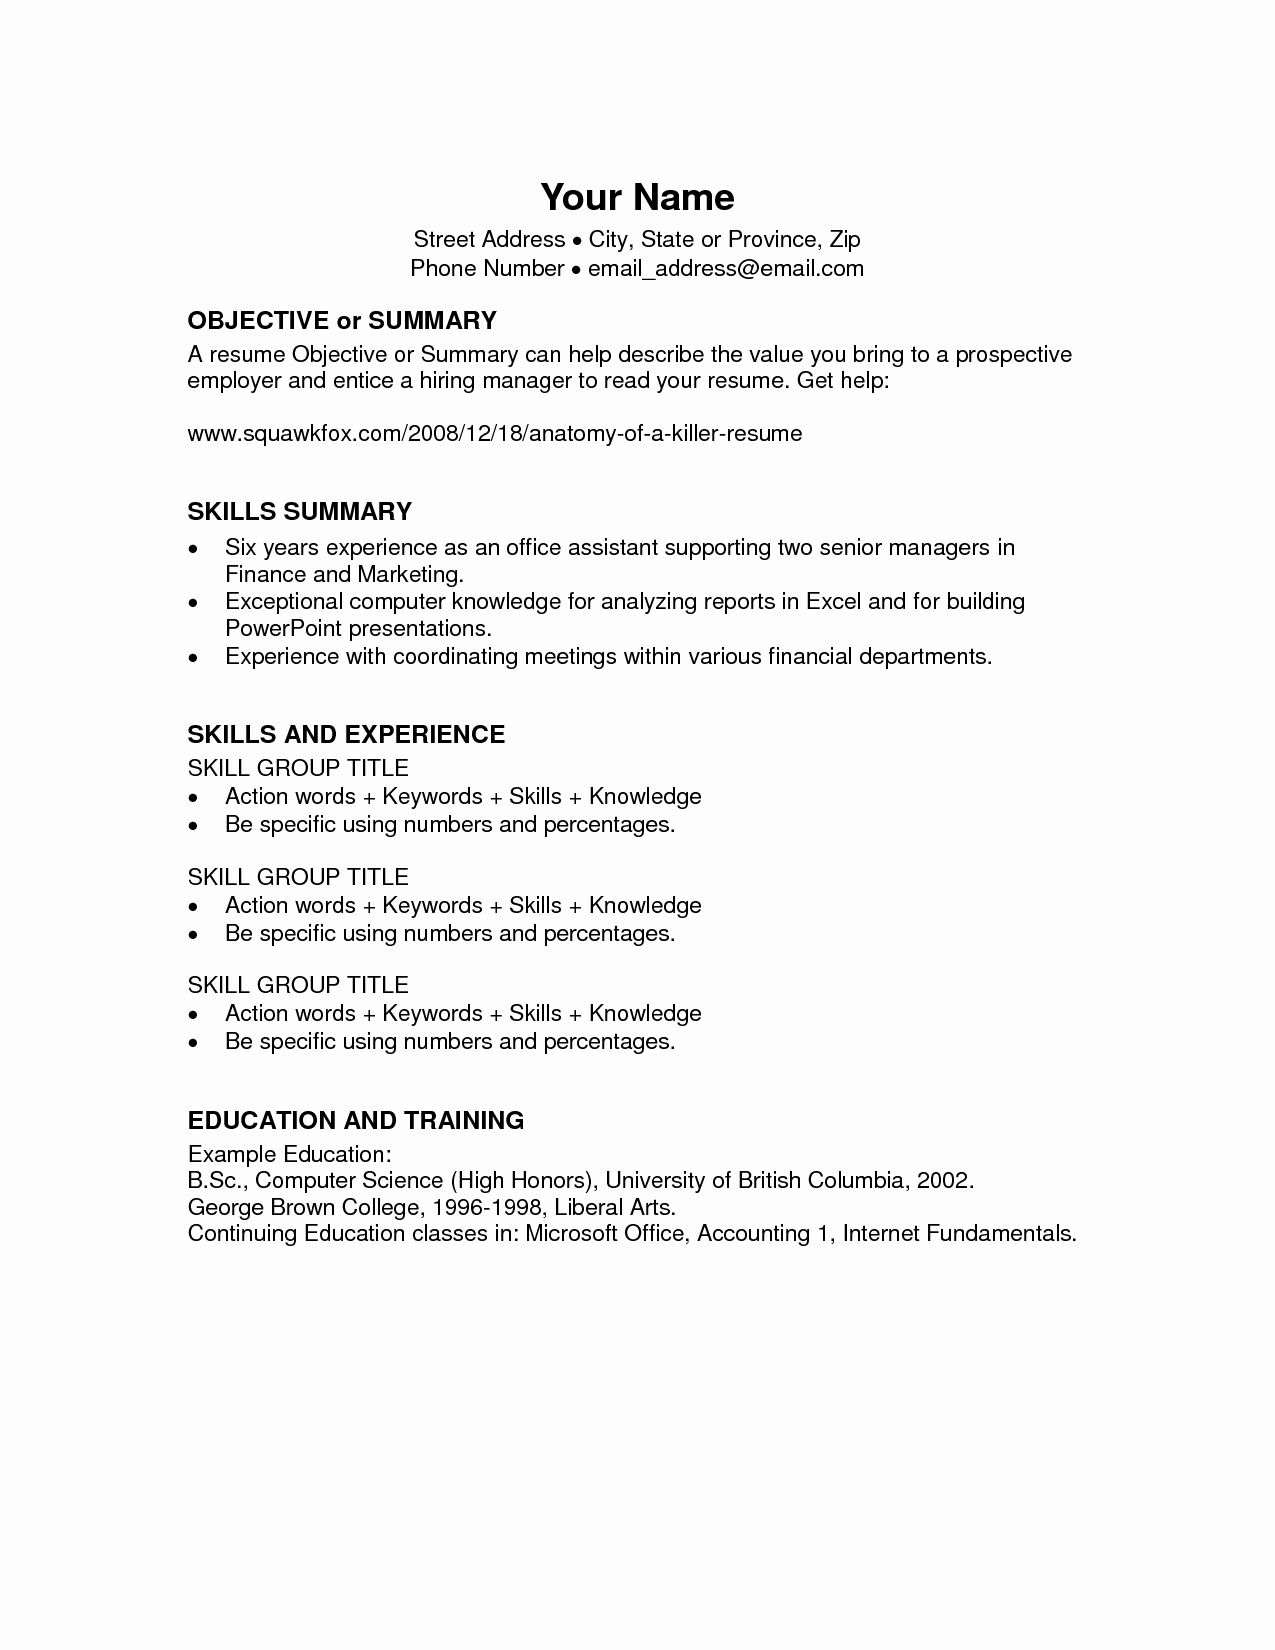 Microsoft Office Word Resume Templates New Microsoft Fice